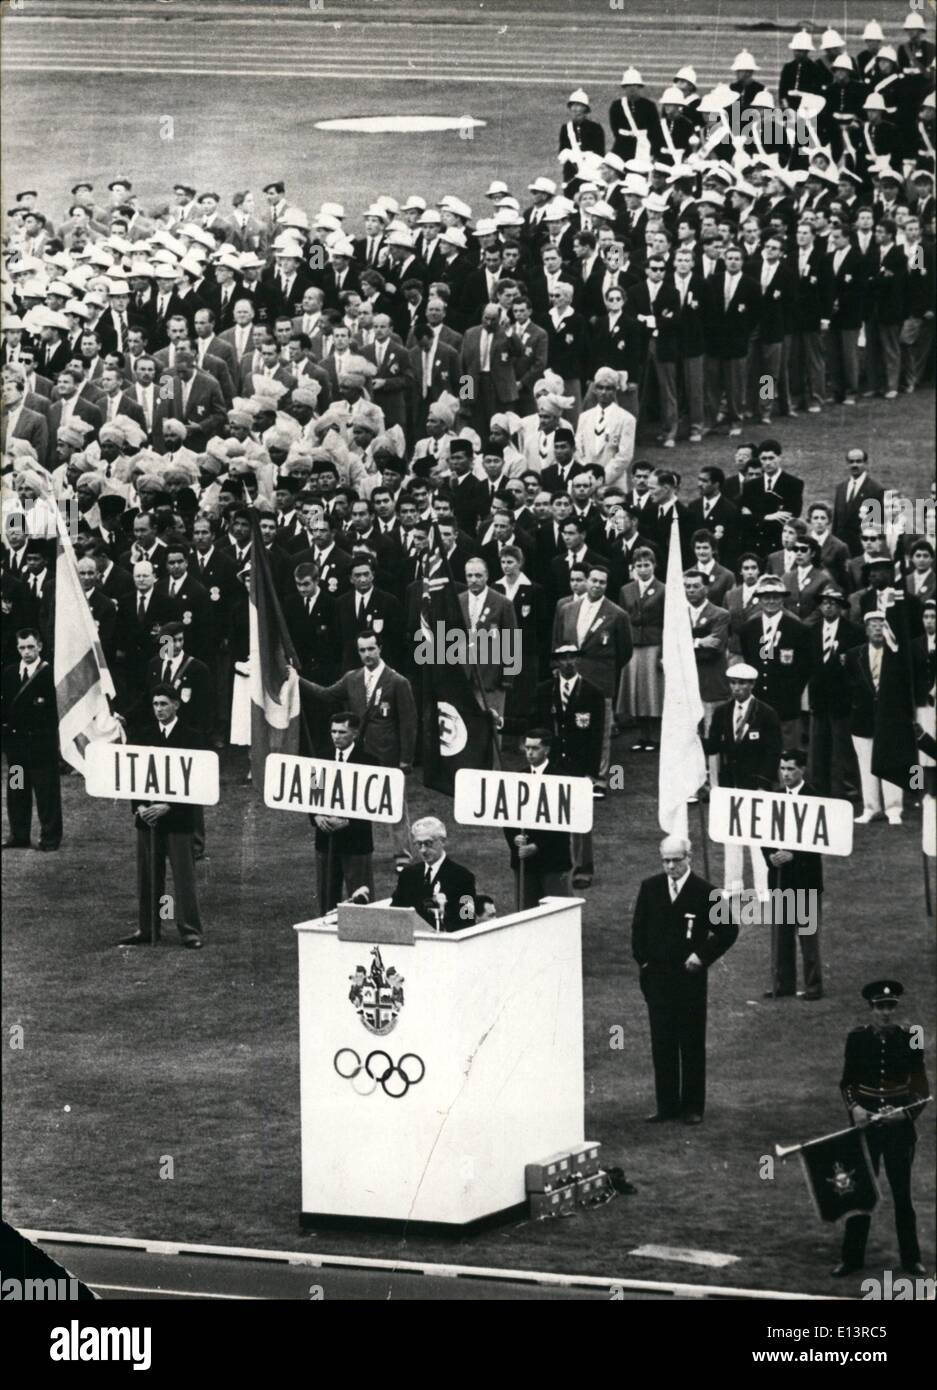 Mar. 27, 2012 - On Thursday 22, 11, 1958: the opening ceremonies of the XVI Olympic summer games begun in Melbourne, The chef of the organization of the Olympics is making his speech. - Stock Image